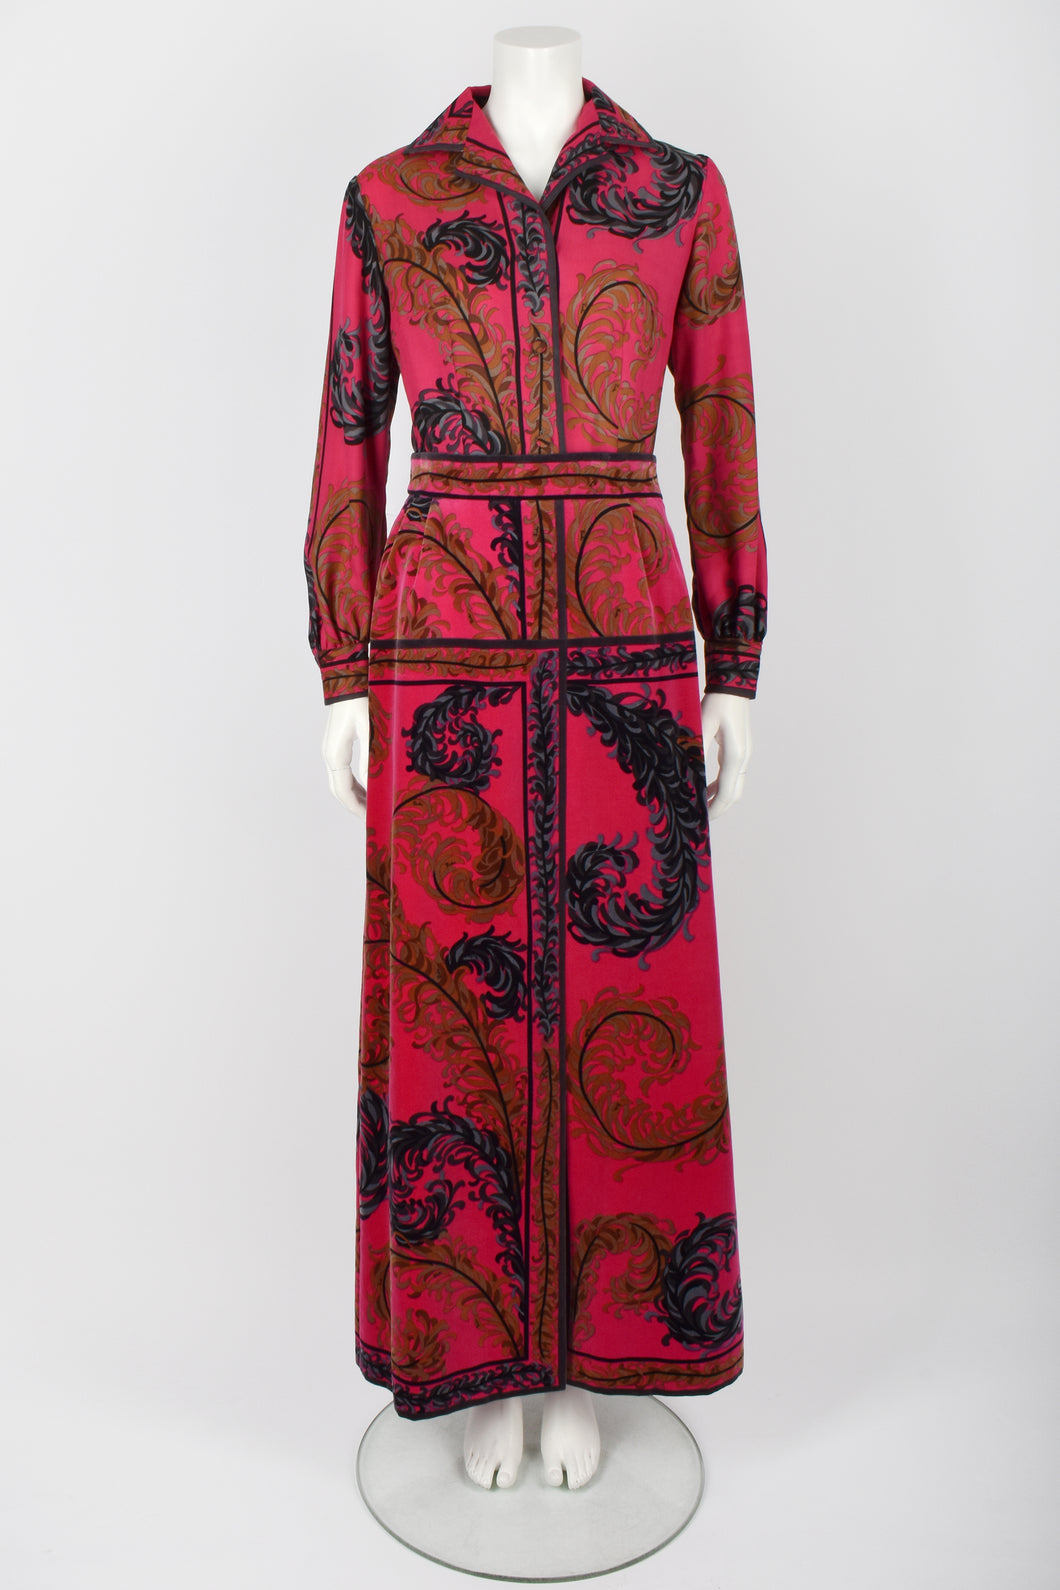 EMILIO PUCCI 70s shirt and skirt set M